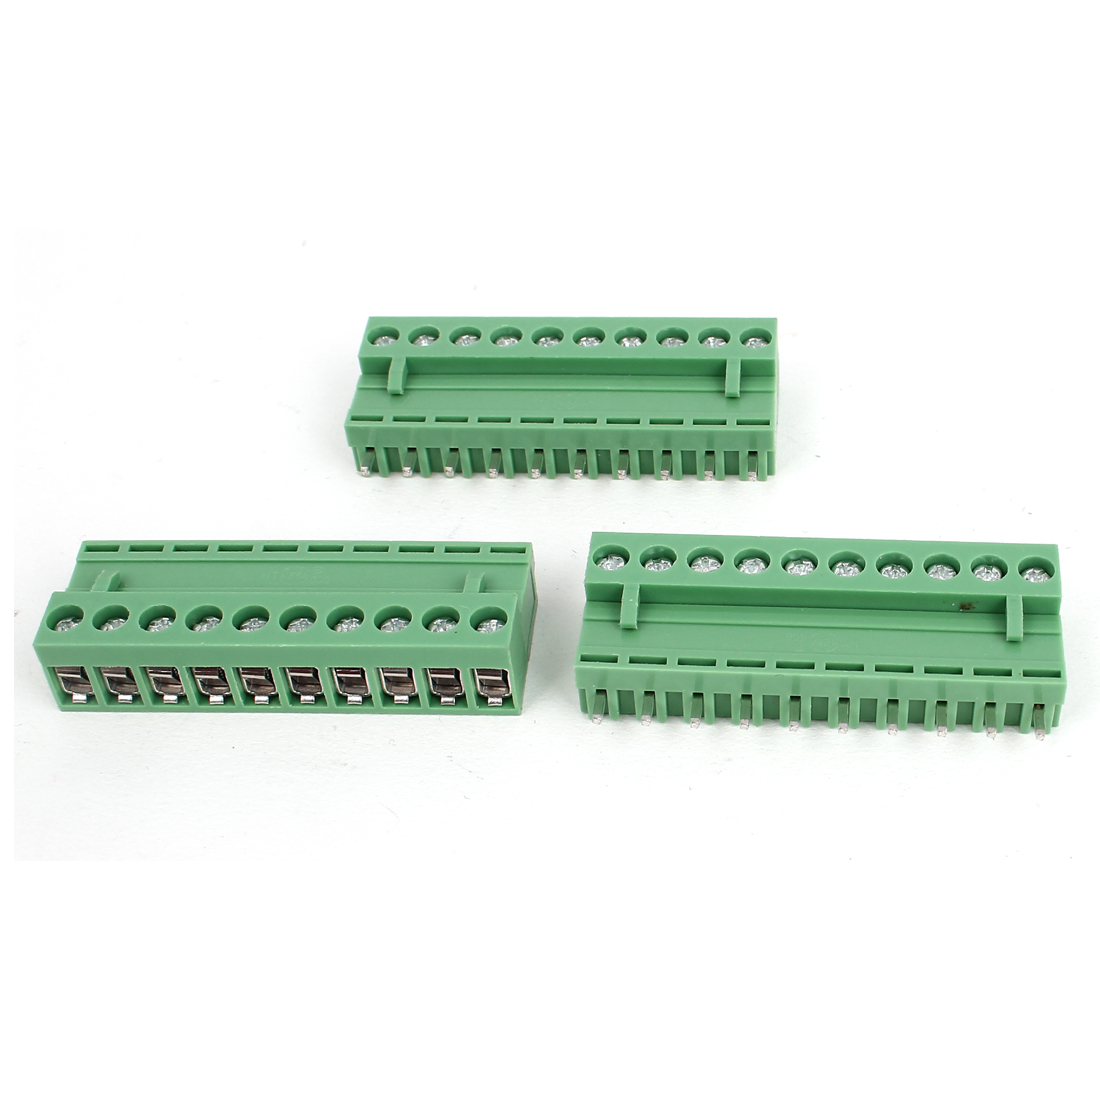 300V 10A 10 Pole 5.08mm Spacing Pluggable Type PCB Screw Terminal Block Straight Connector 3pcs Green